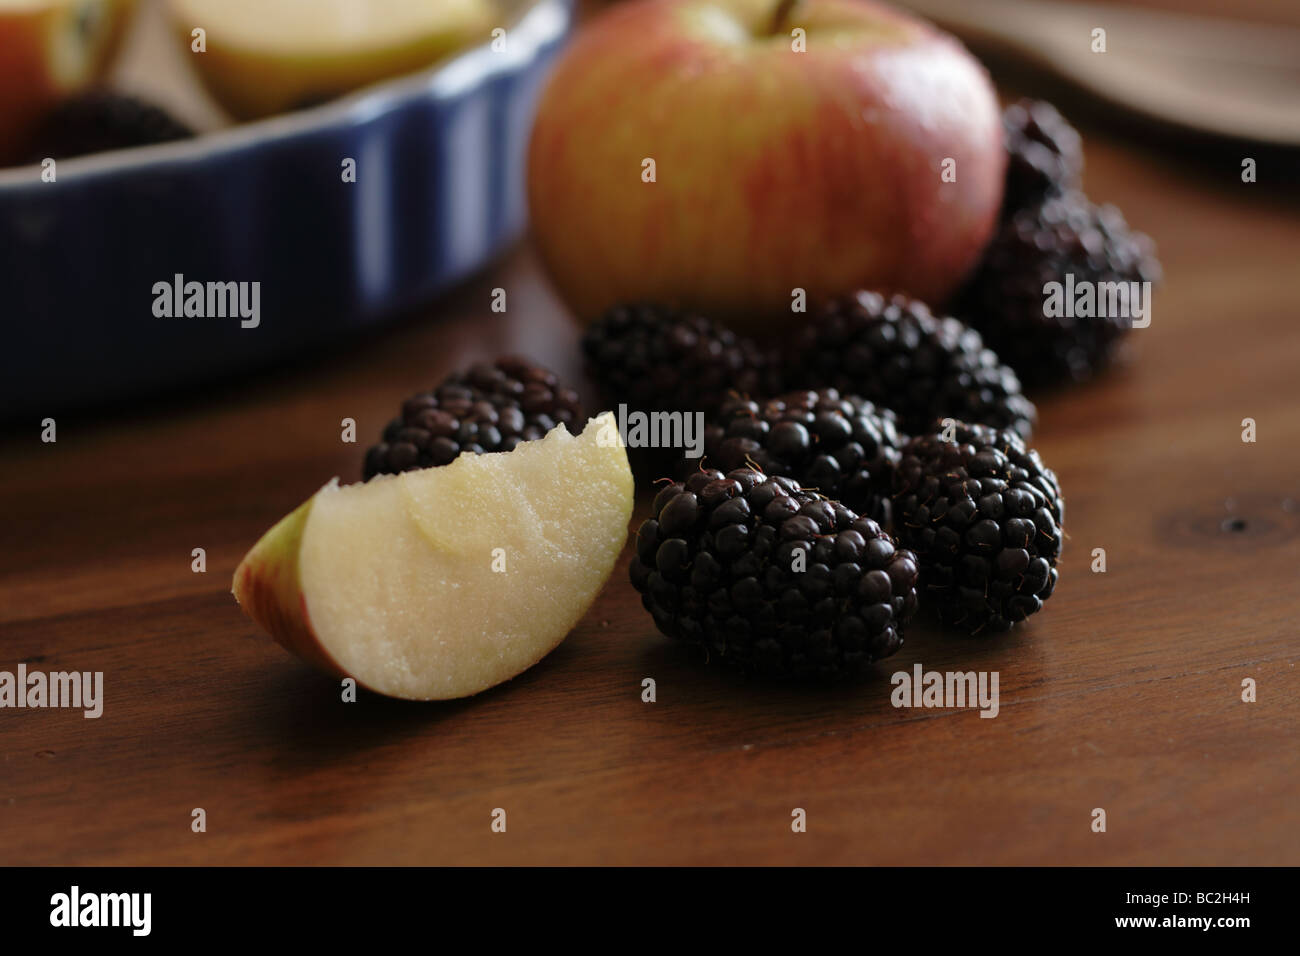 Apples and blackberries on a wooden table - Stock Image